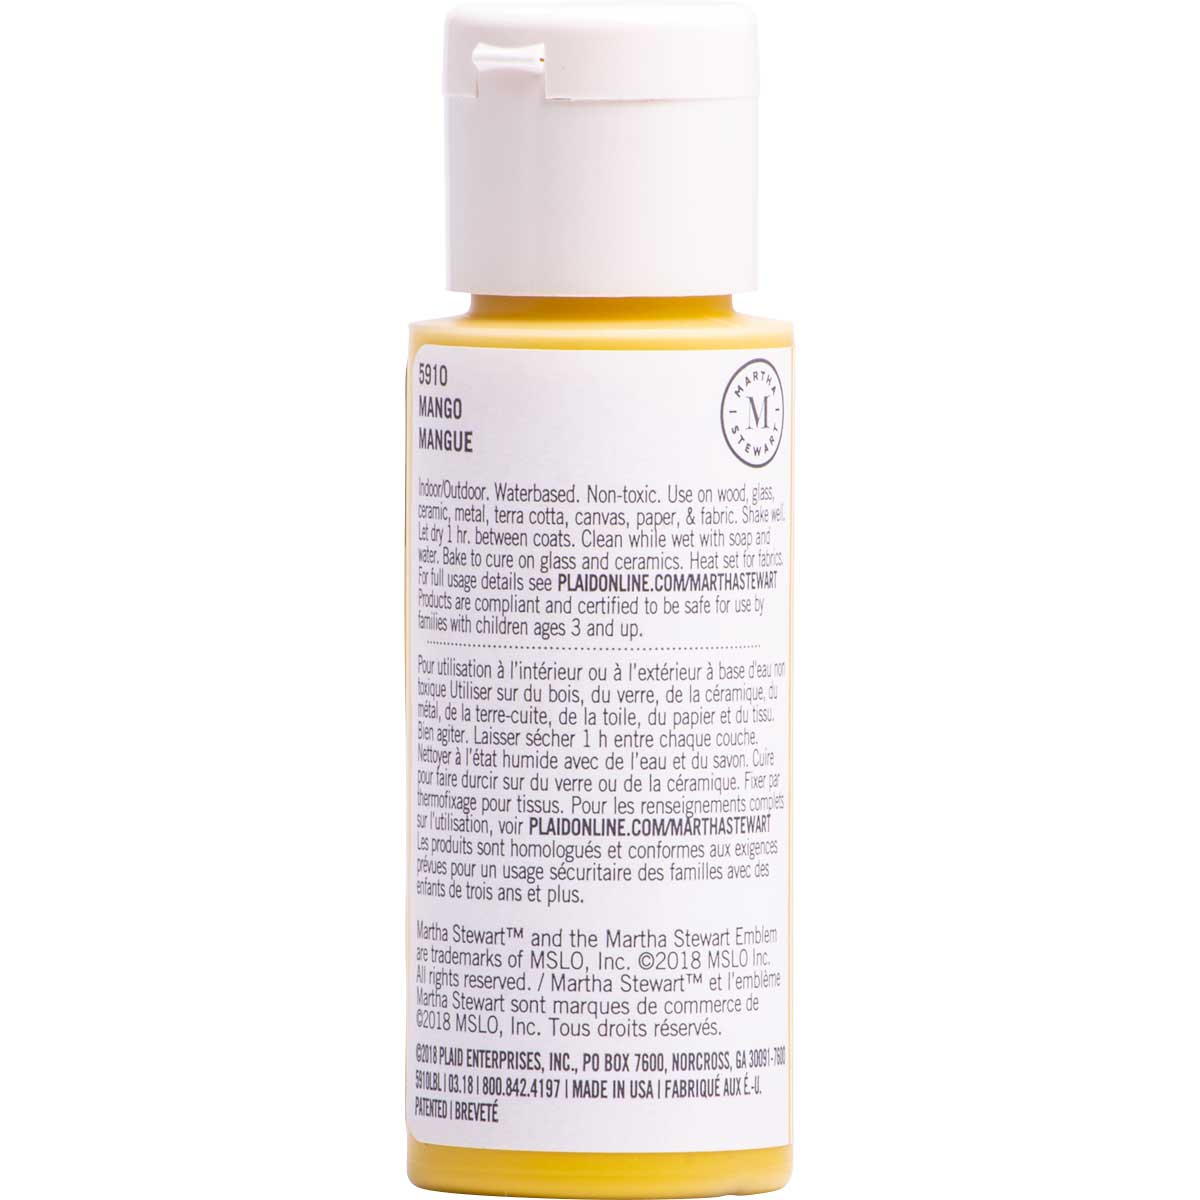 Martha Stewart ® Multi-Surface Satin Acrylic Craft Paint CPSIA - Mango, 2 oz. - 5910